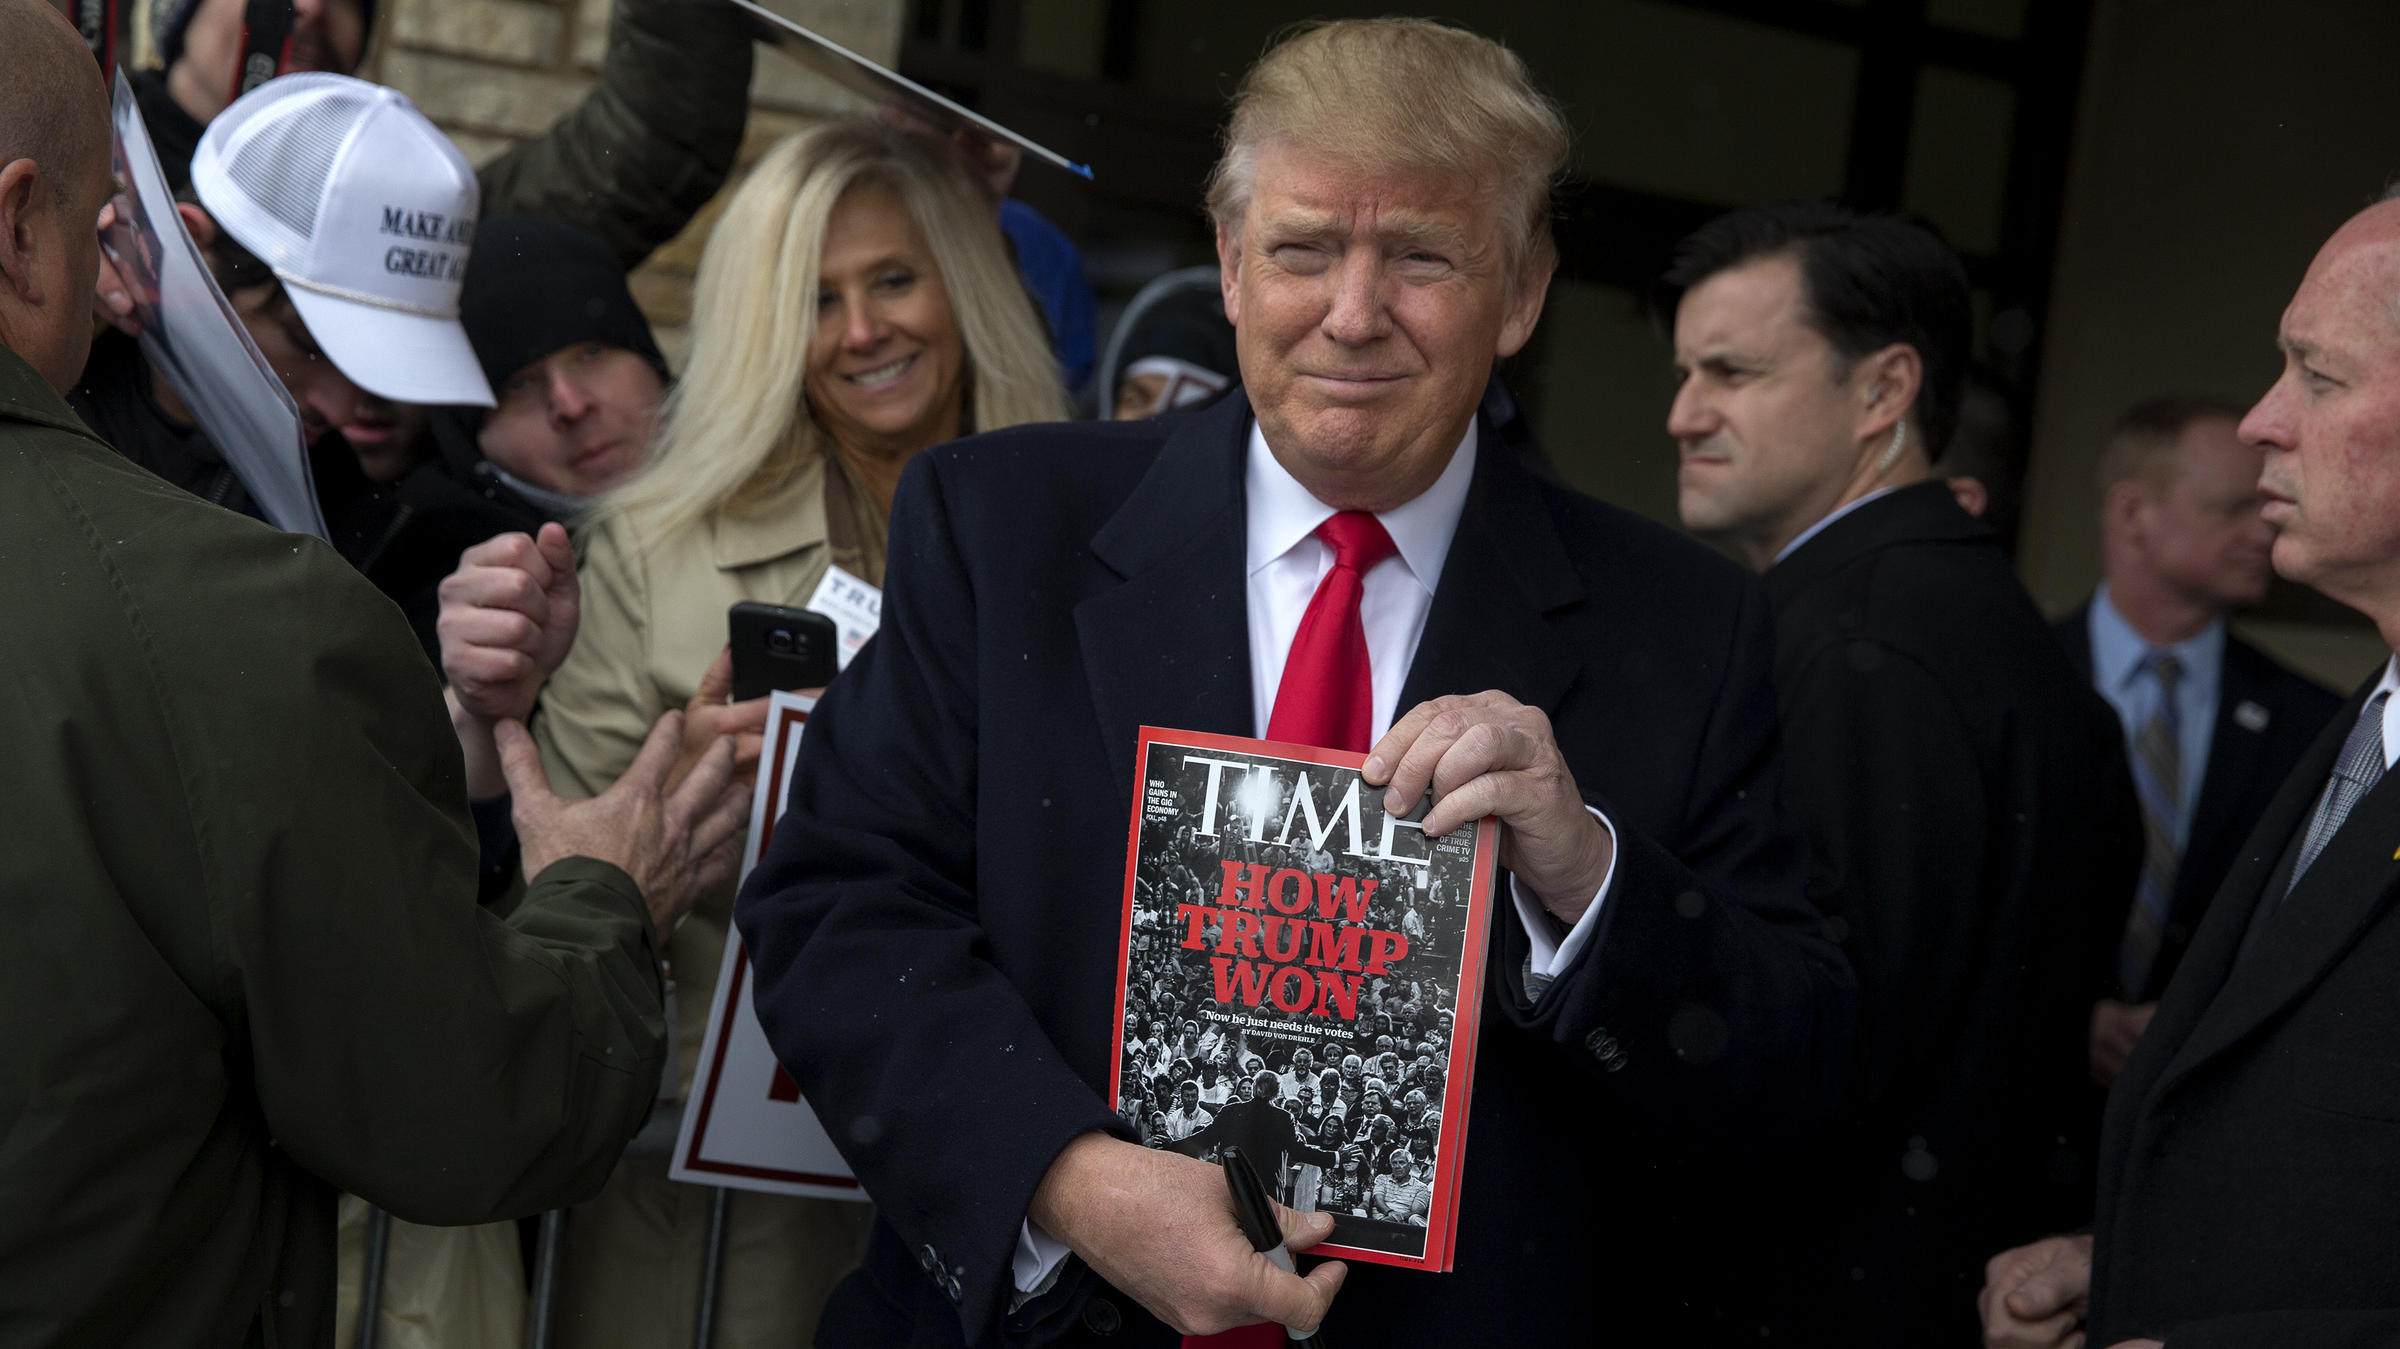 Trump Ridiculed For Time Magazine Tweet